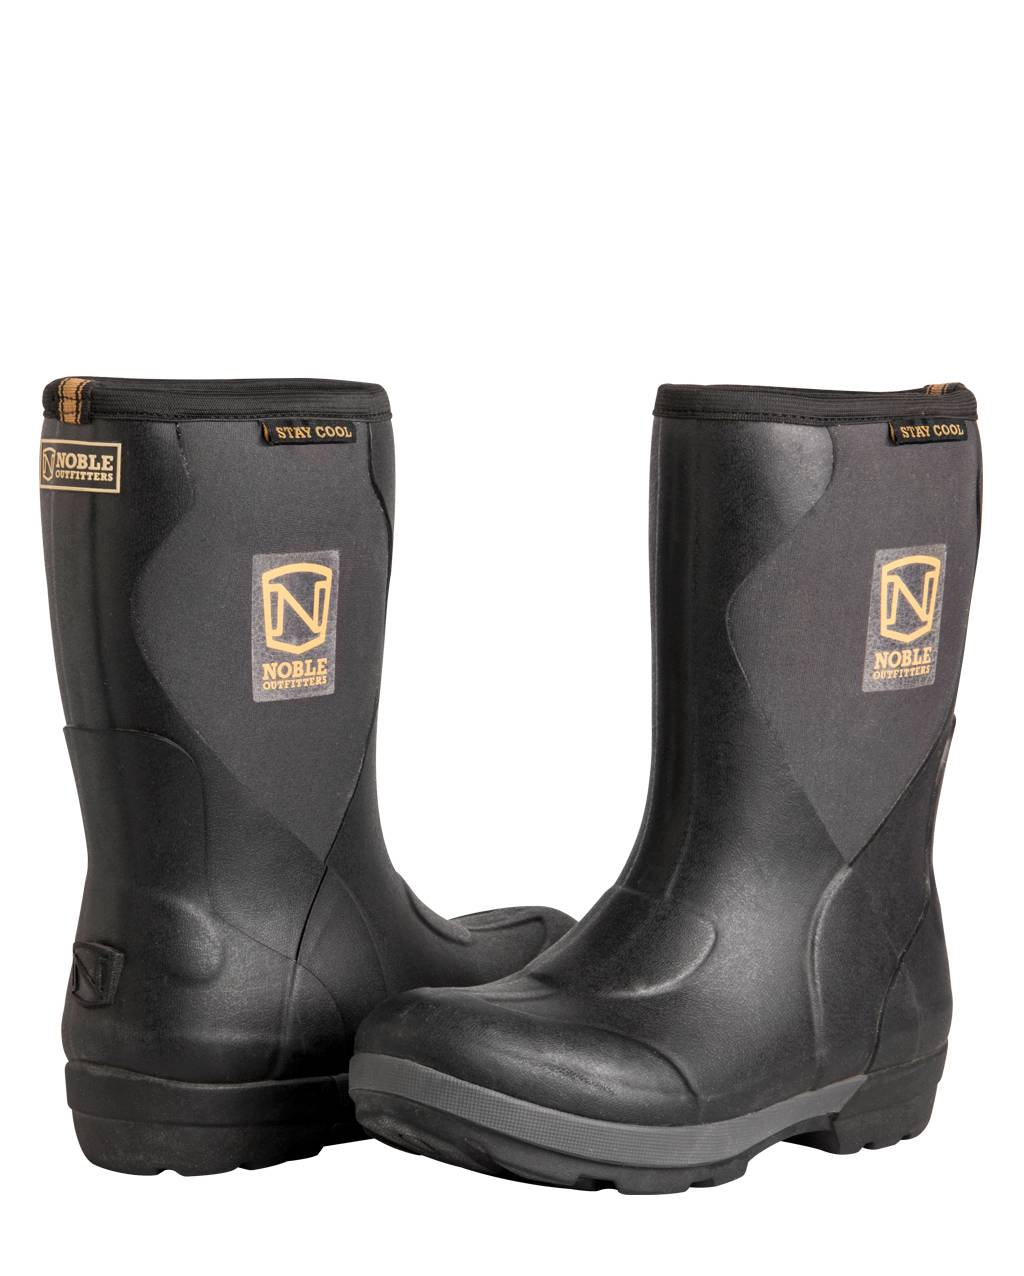 Noble Outfitters Mud Boots - Ladies, Mid Height